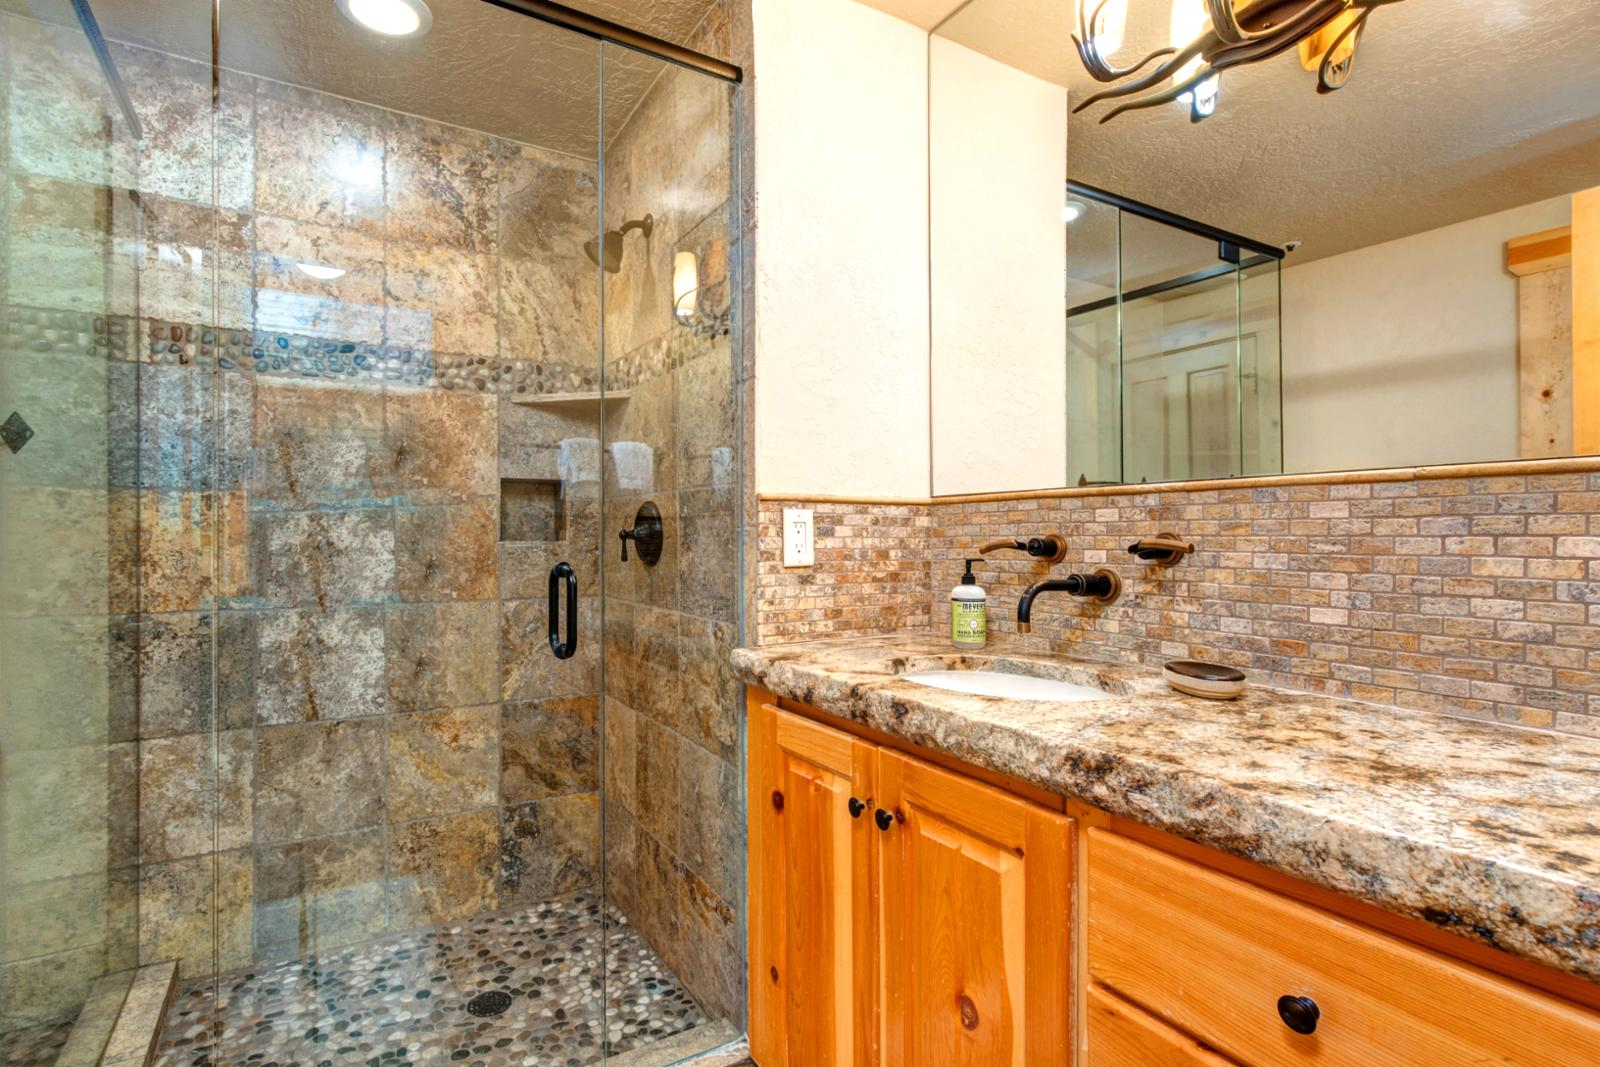 Shared shower bathroom for Bedroom #1 and for guests